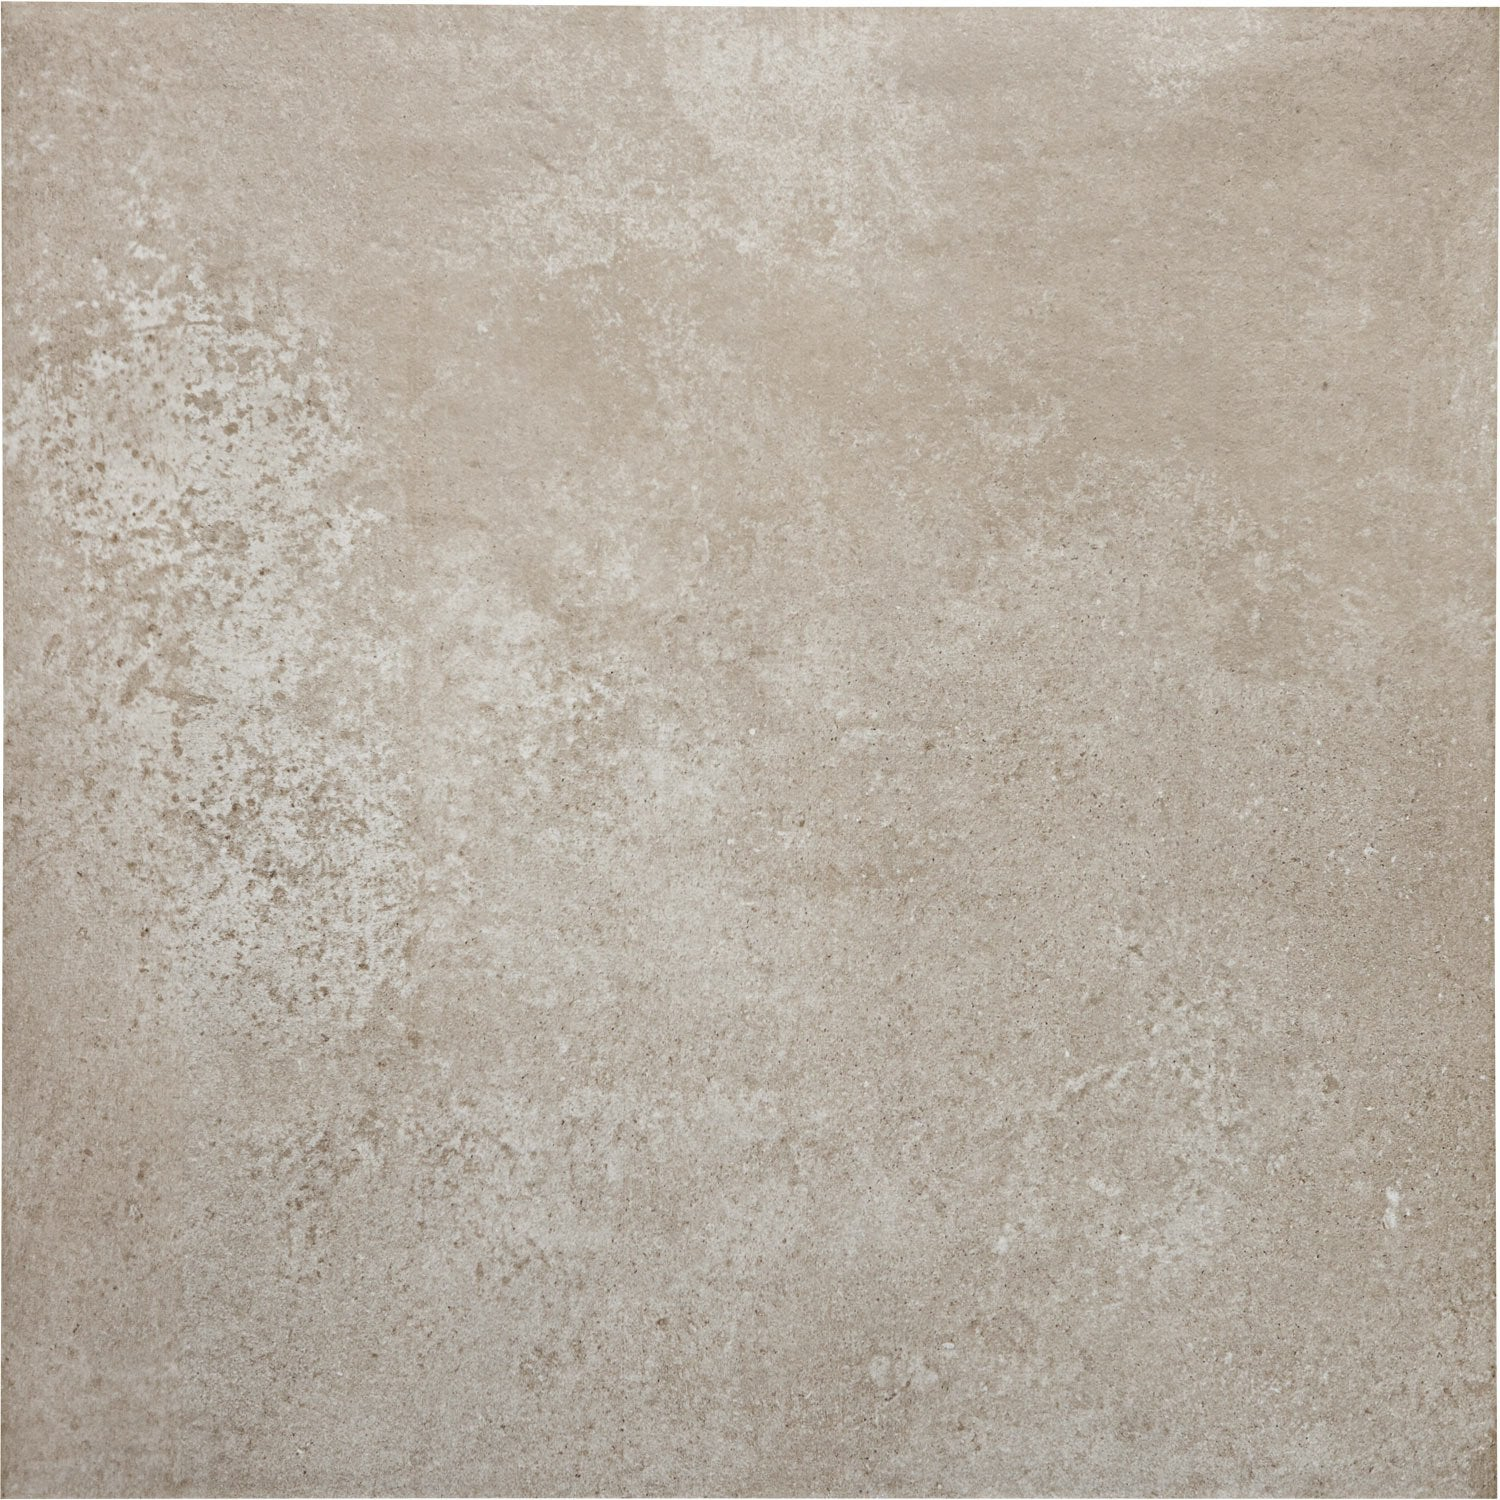 Carrelage sol et mur taupe effet pierre chateau x l for Carrelage taupe